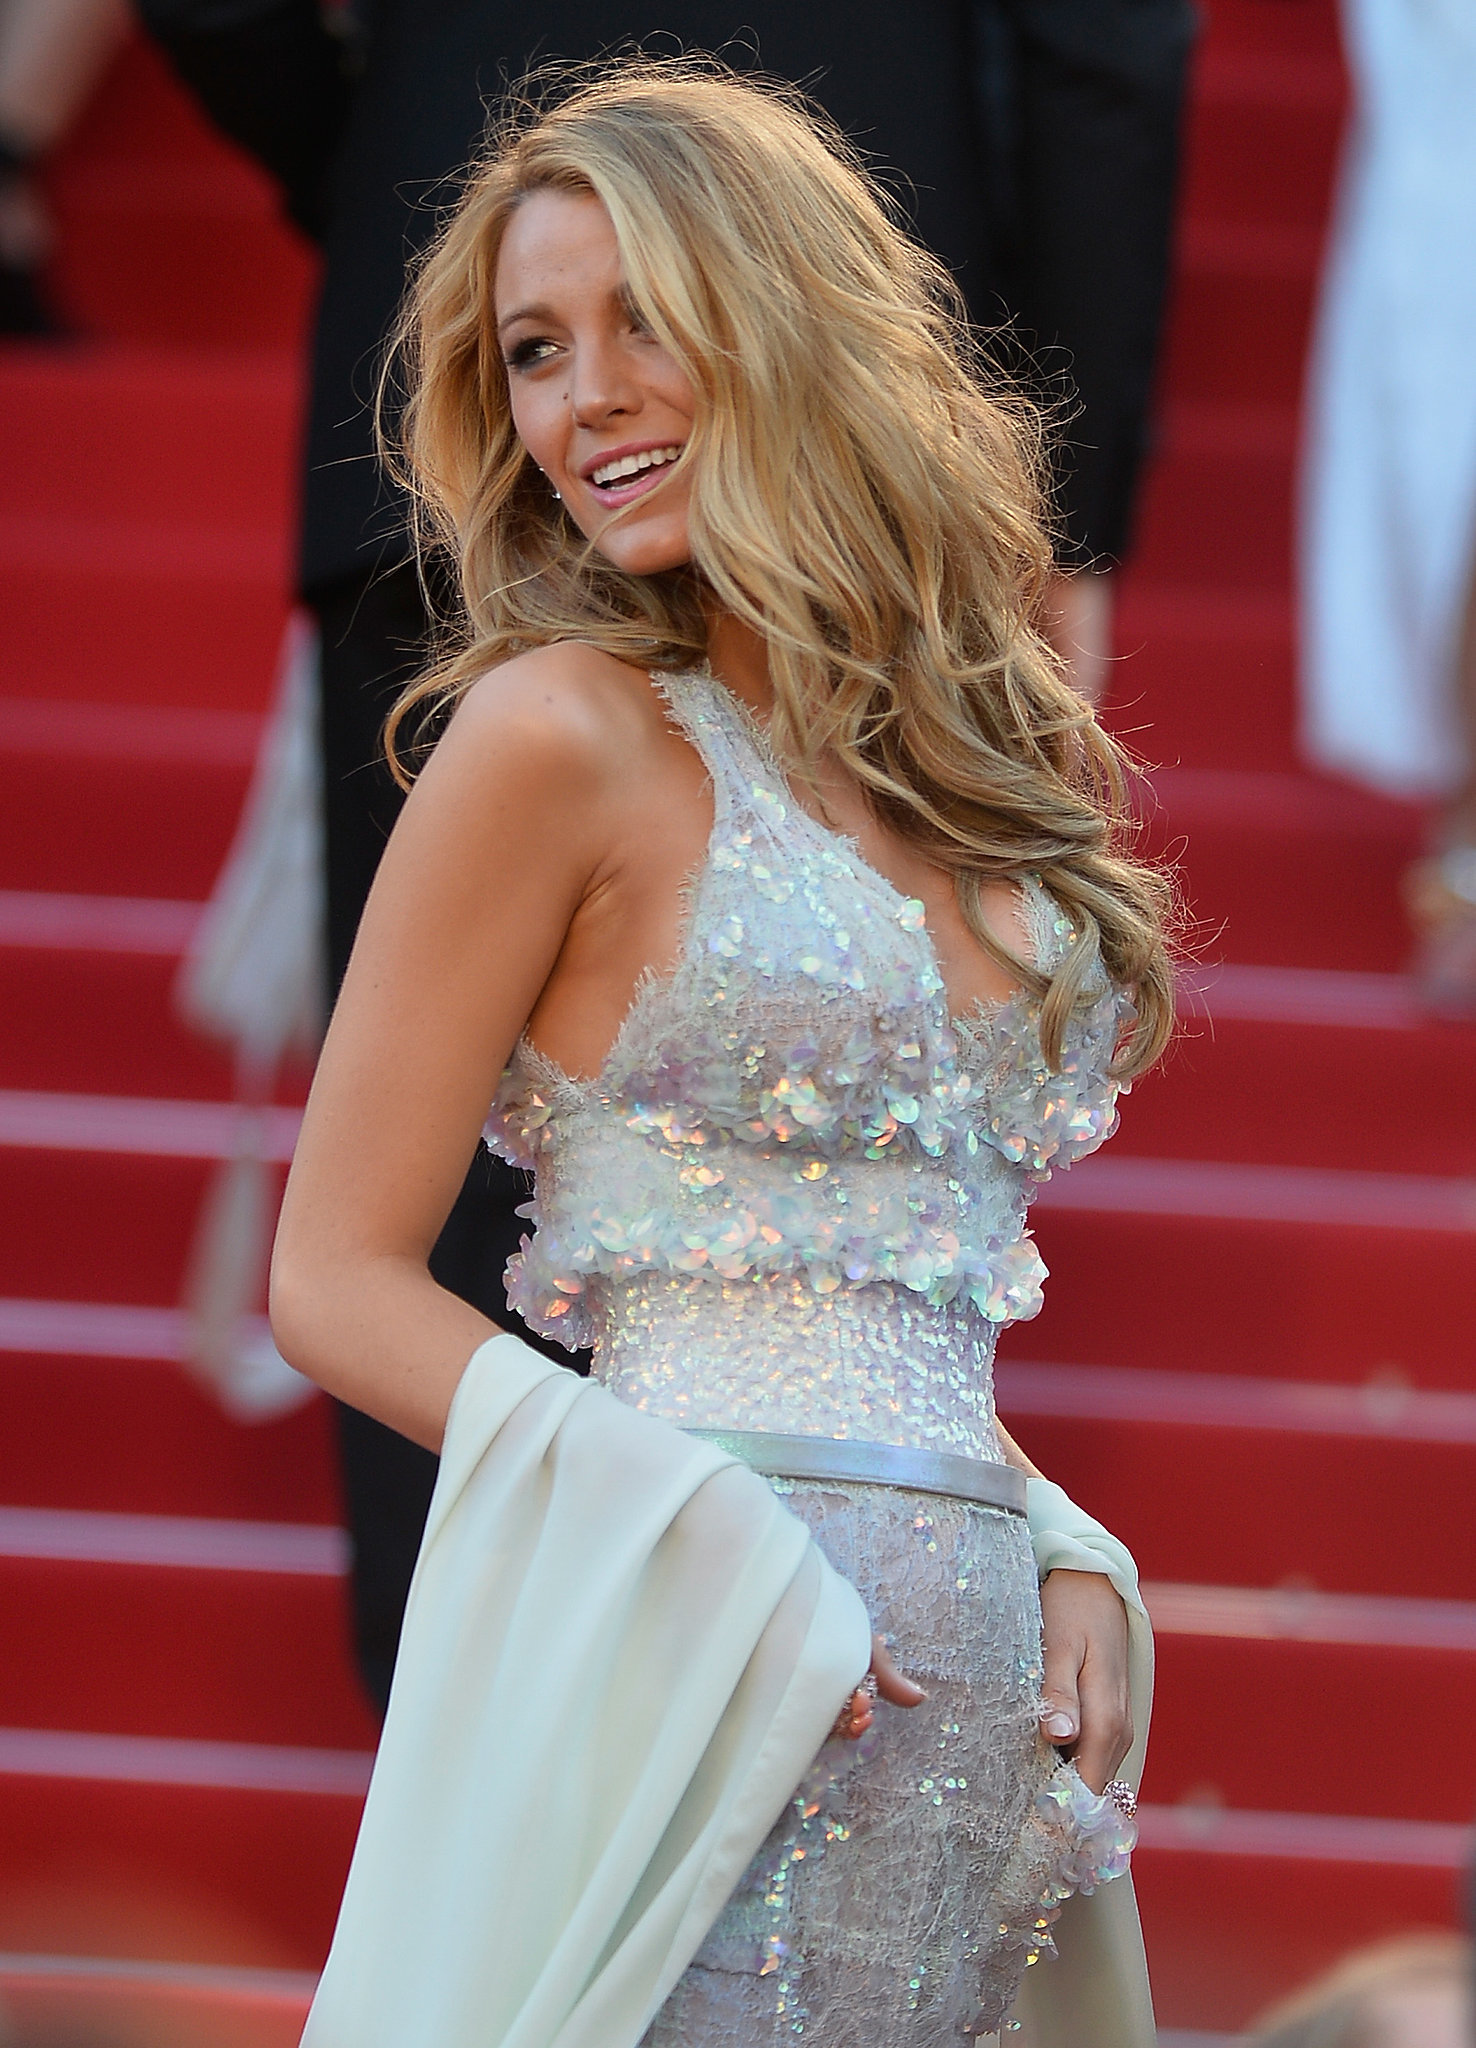 Blake Lively Is Probably the Hottest Person You'll See All Day